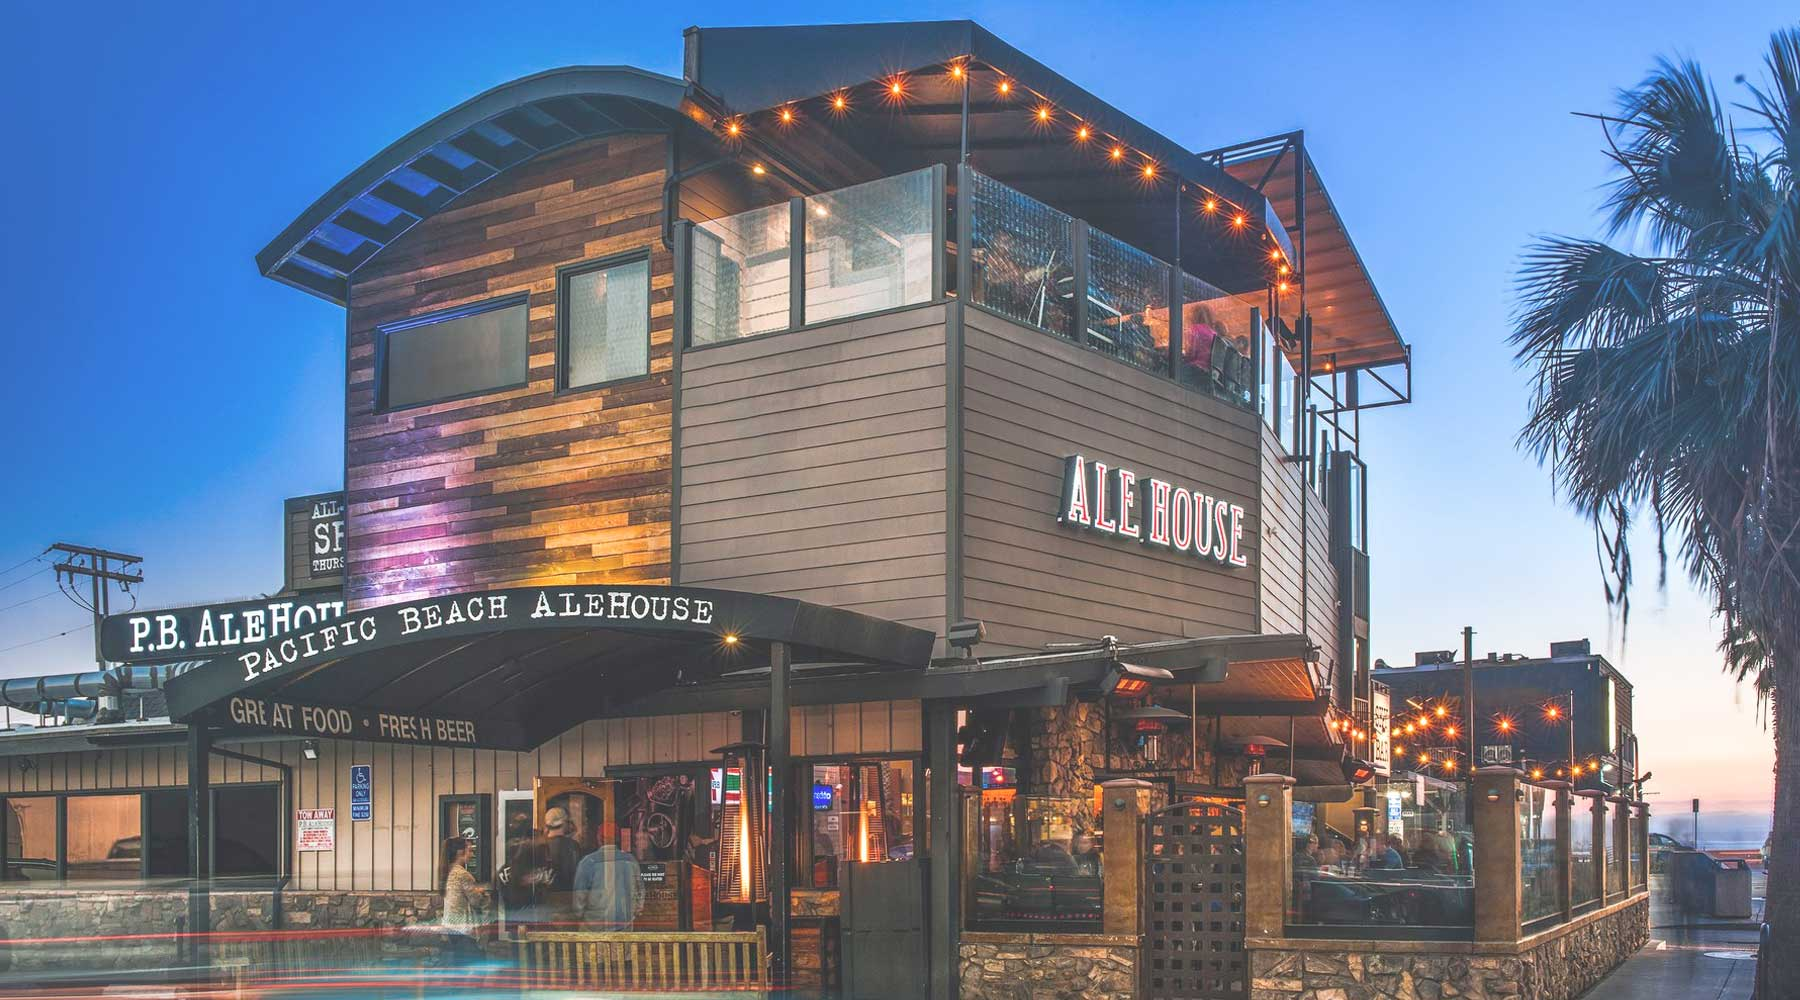 Pacific Beach Ale House | Just Wine